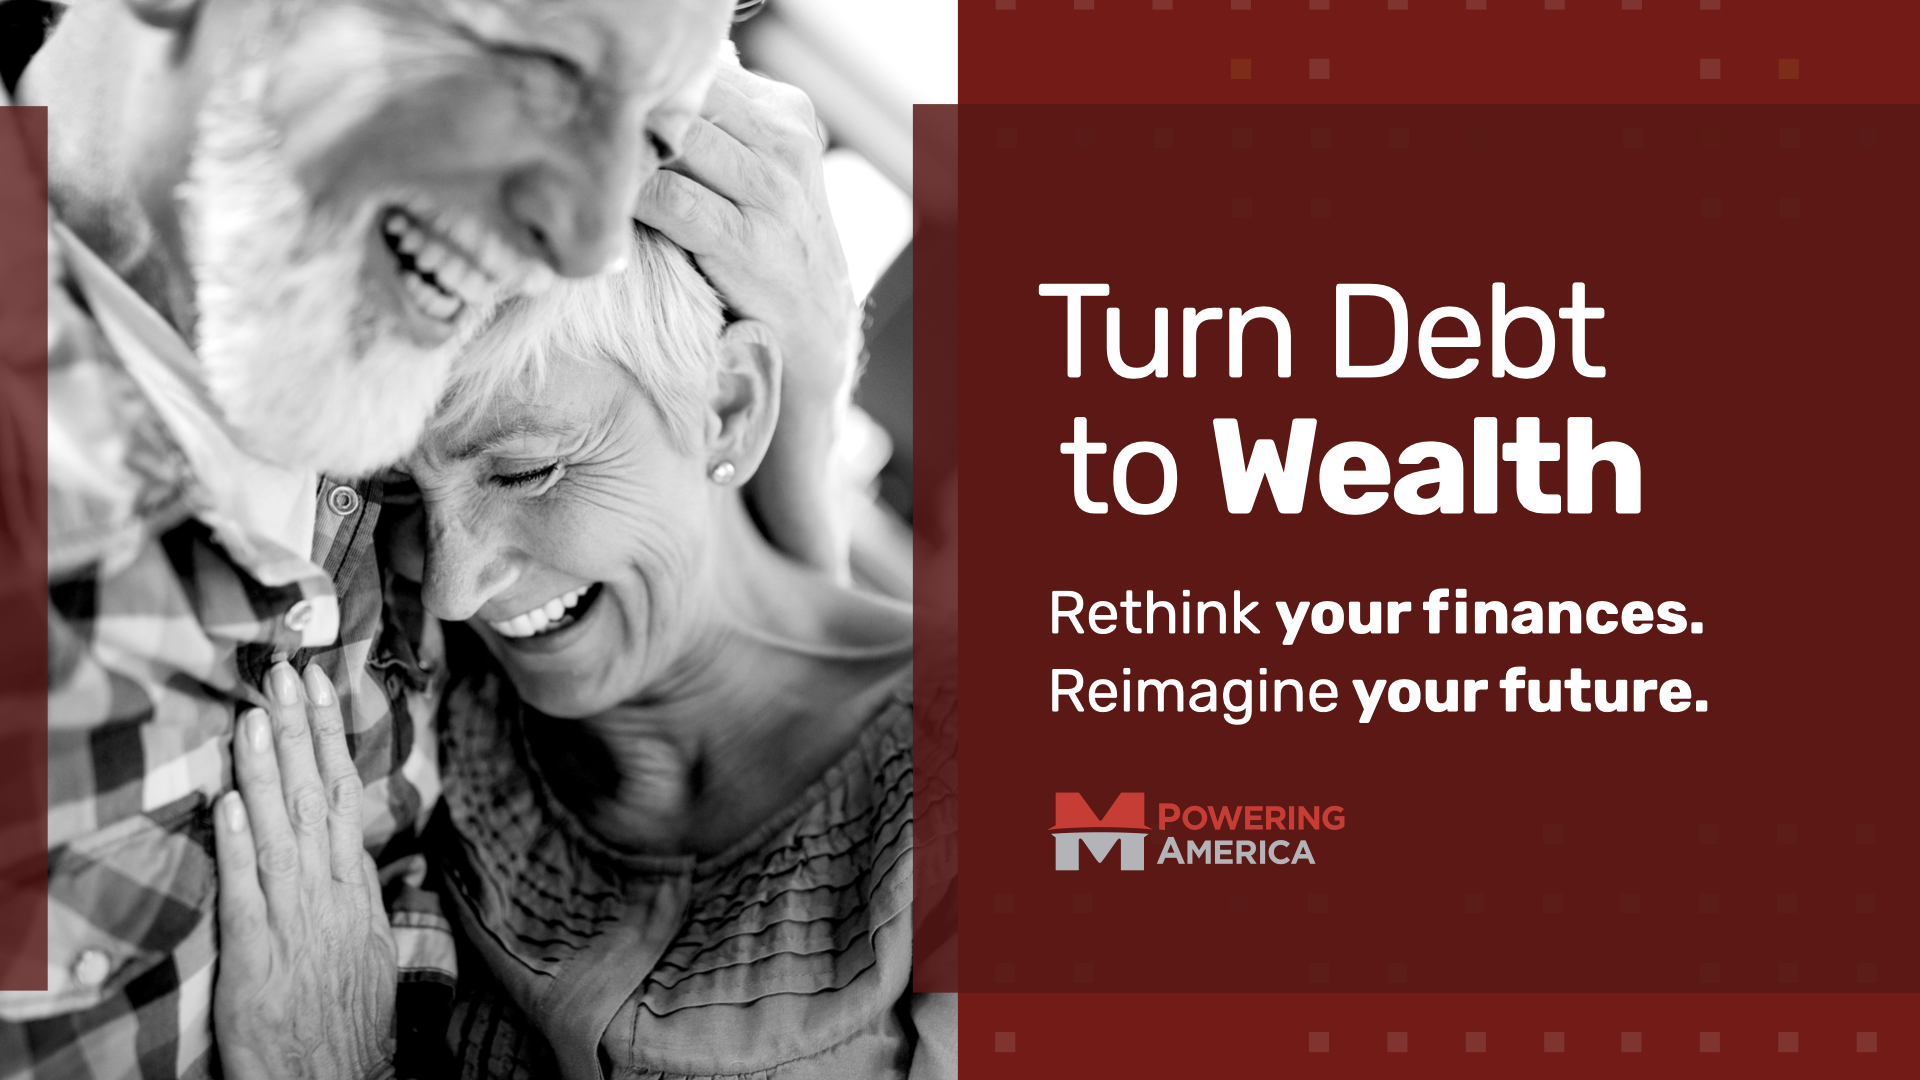 Turn Debt to Wealth